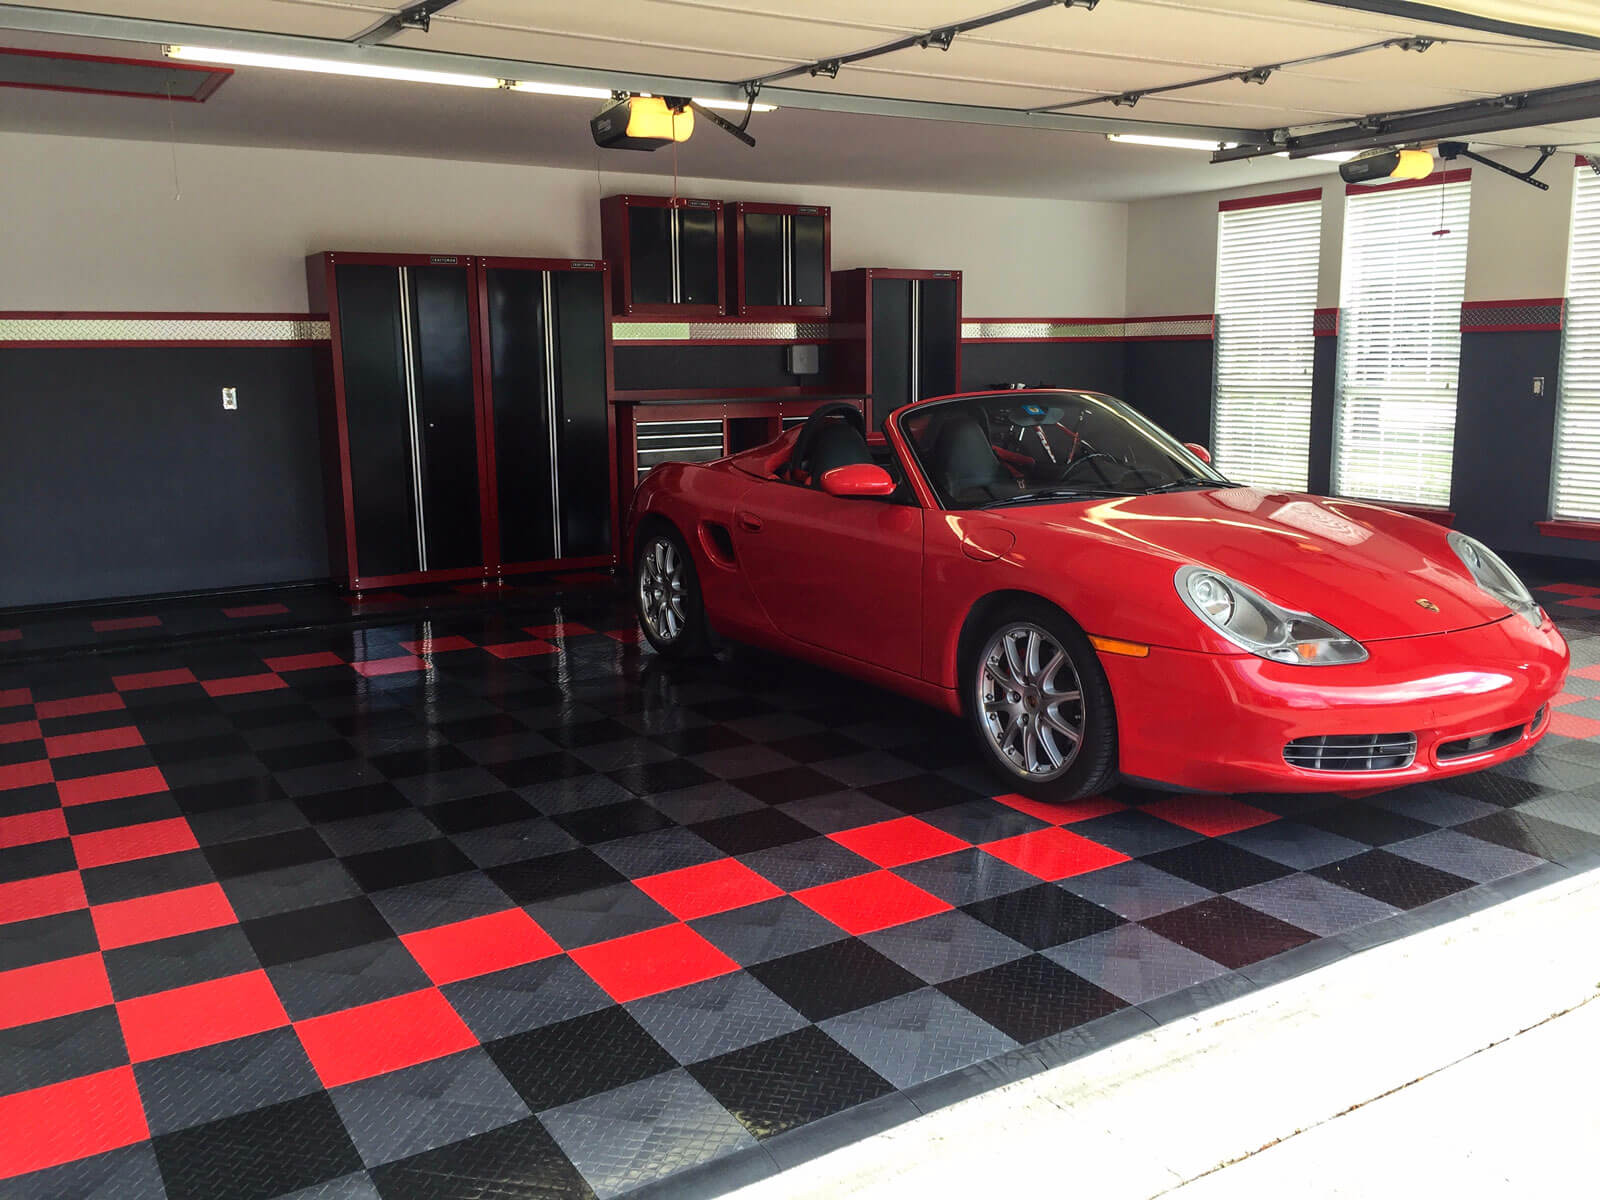 RaceDeck Diamond alloy, black, and red garage with Porsche